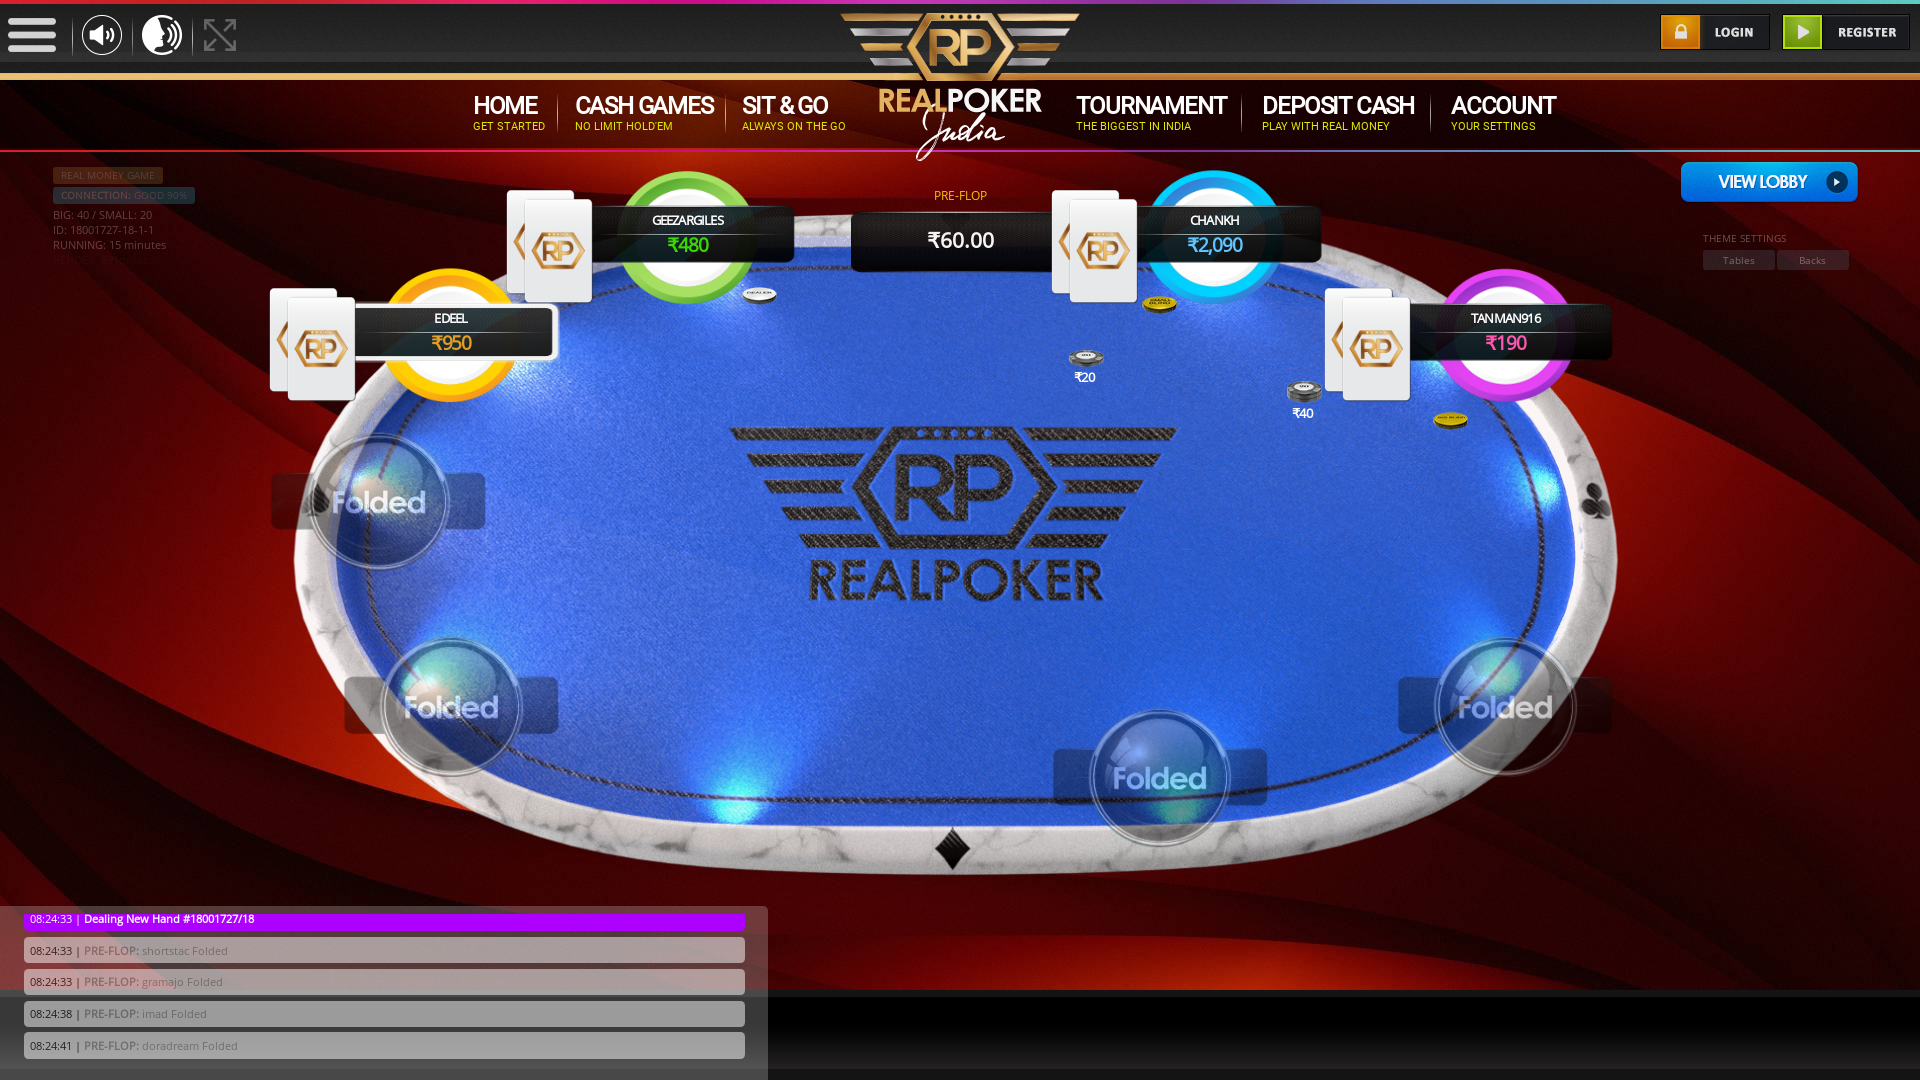 Greater Kailash, New Delhi Holdem Poker from July